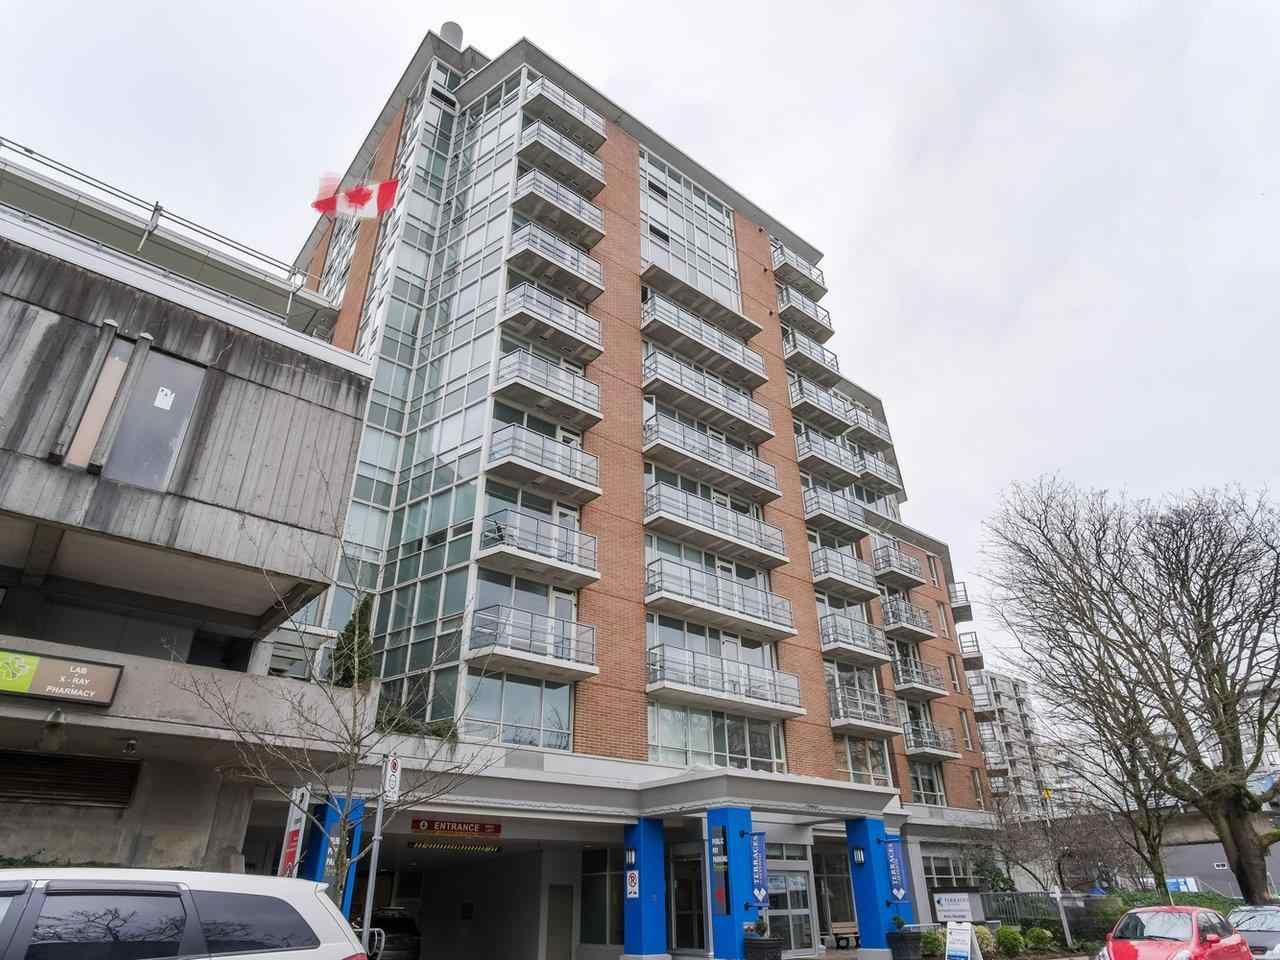 """Main Photo: 900 1570 W 7TH Avenue in Vancouver: Fairview VW Condo for sale in """"Terraces on 7th"""" (Vancouver West)  : MLS®# R2588372"""